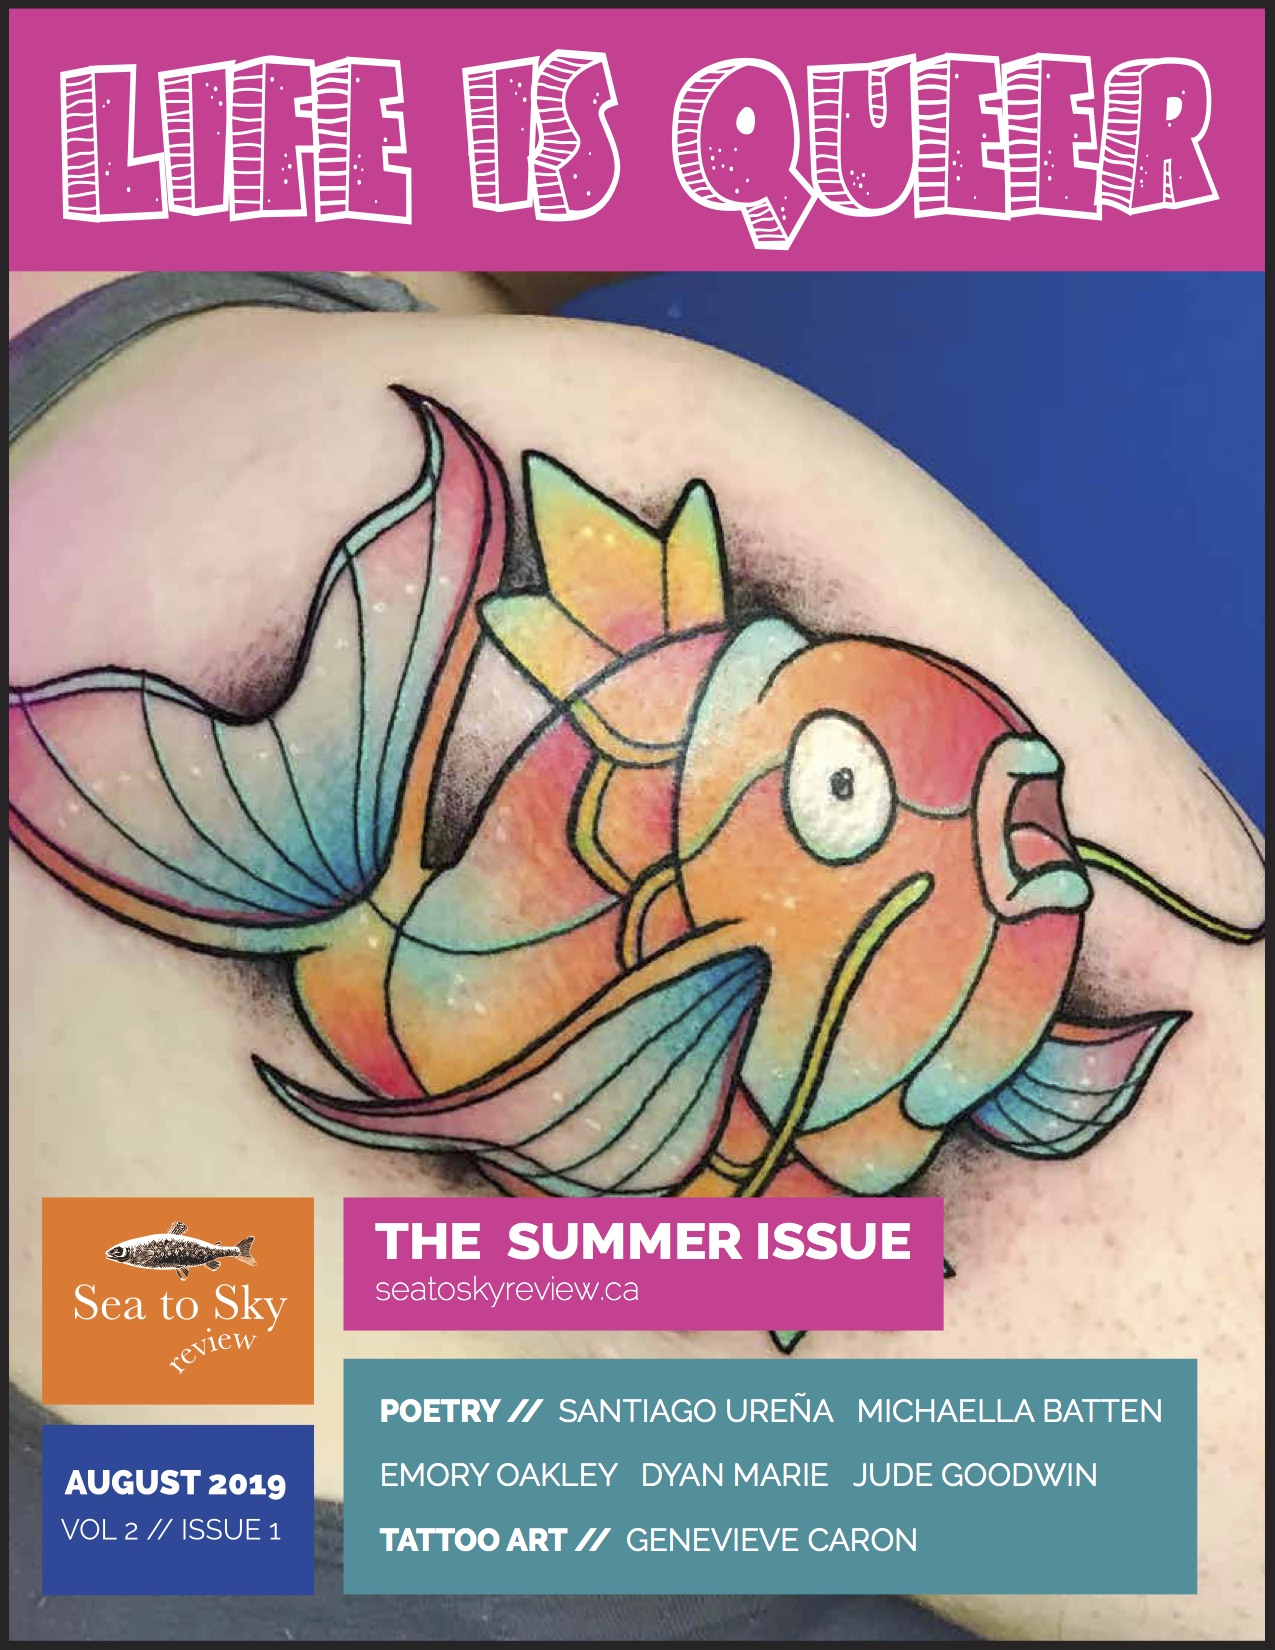 SeatoskyreviewAugust2019-cover.jpg